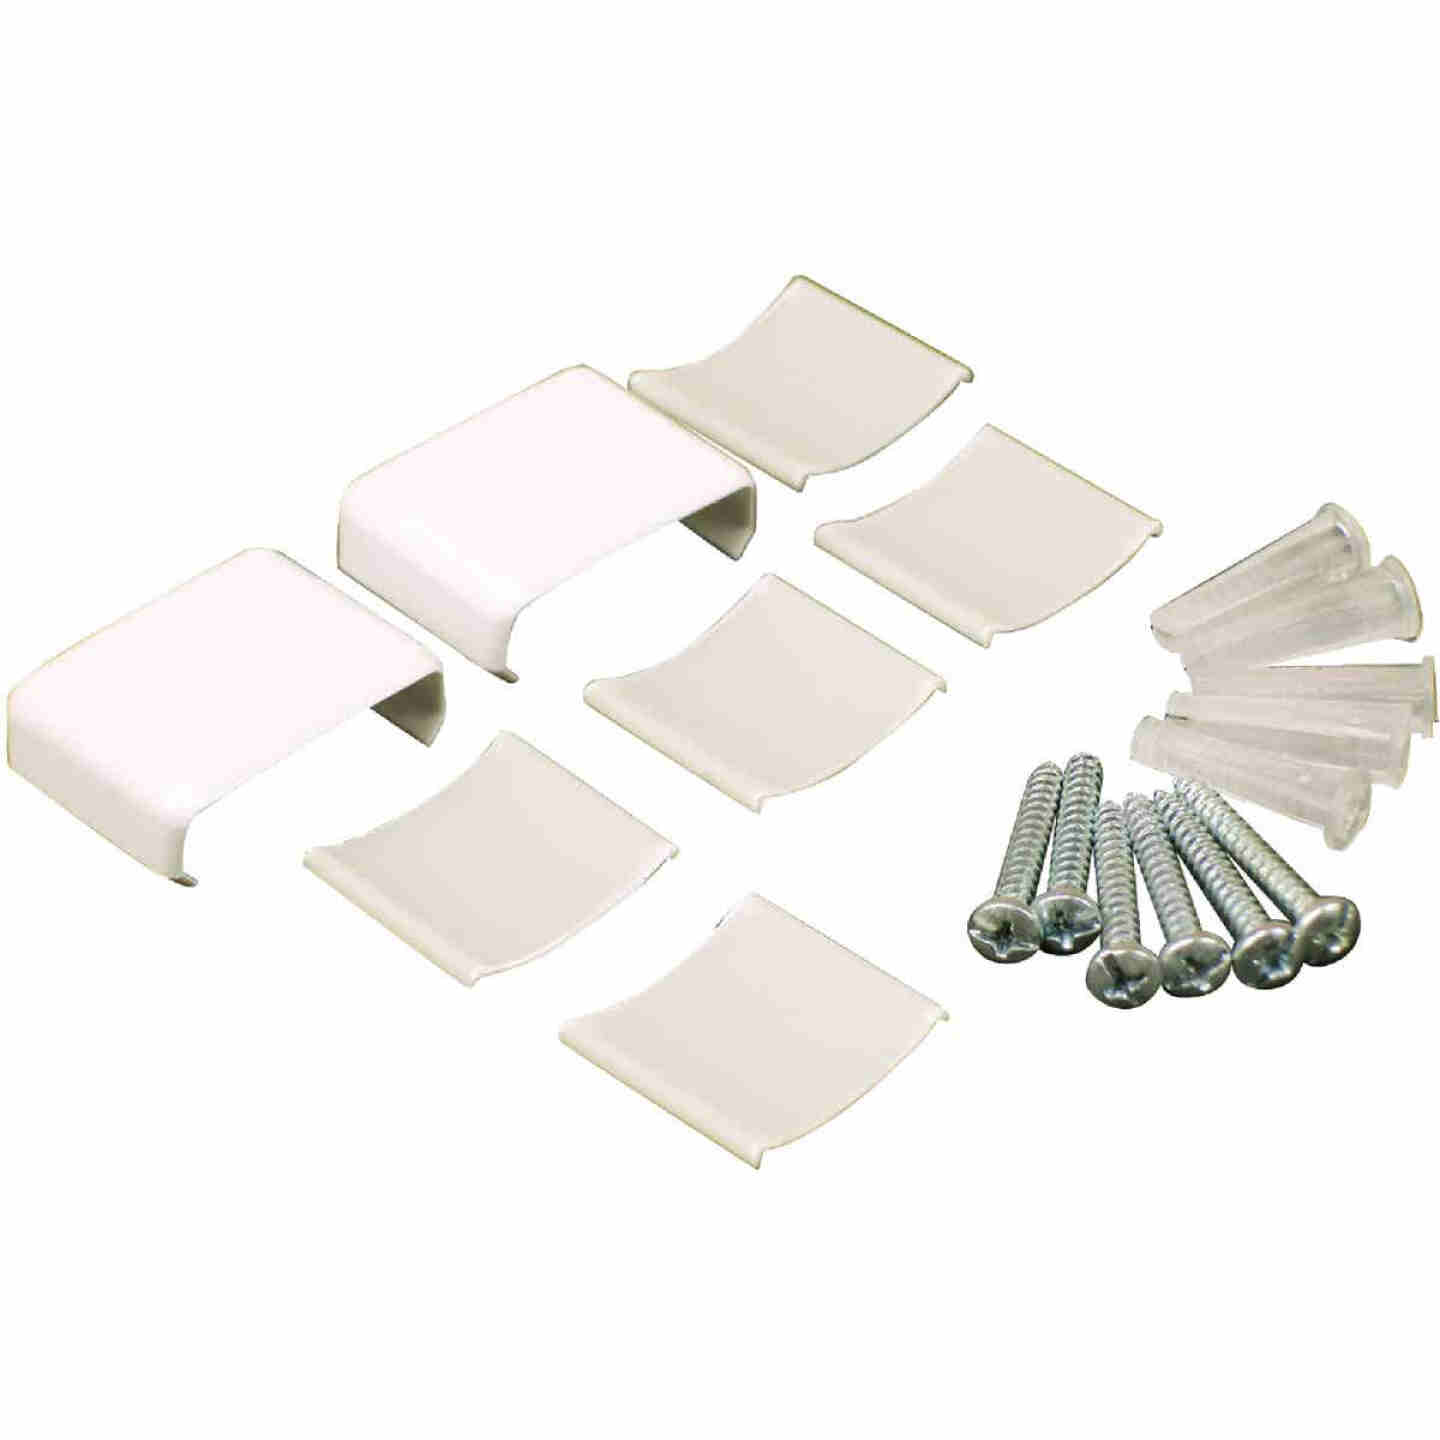 Wiremold White Wire Protector Accessory Kit Image 1